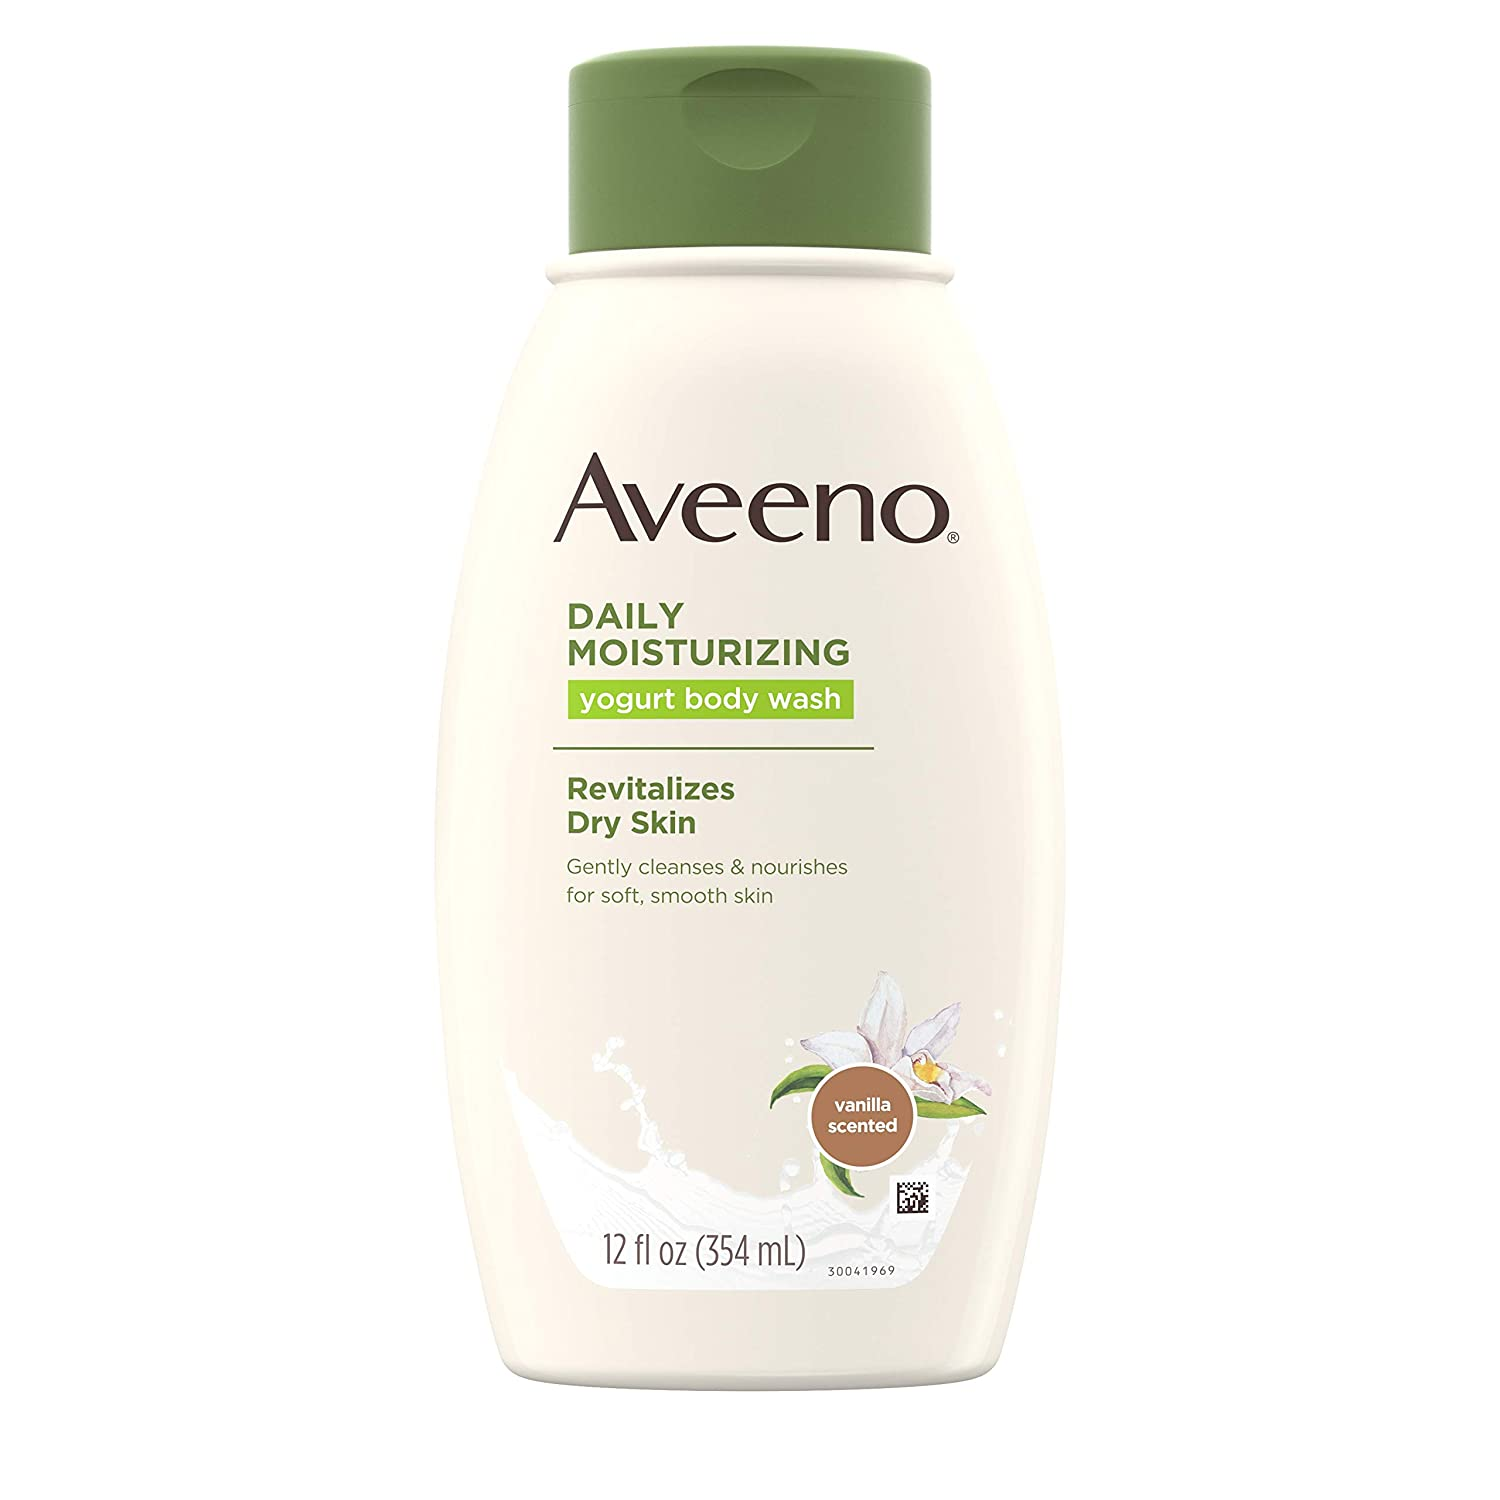 Aveeno Daily Moisturizing Yogurt Body Wash for Dry Skin with Soothing Oat & Vanilla Scent, Gentle Body Cleanser, 12 fl. oz ( Pack of 3)